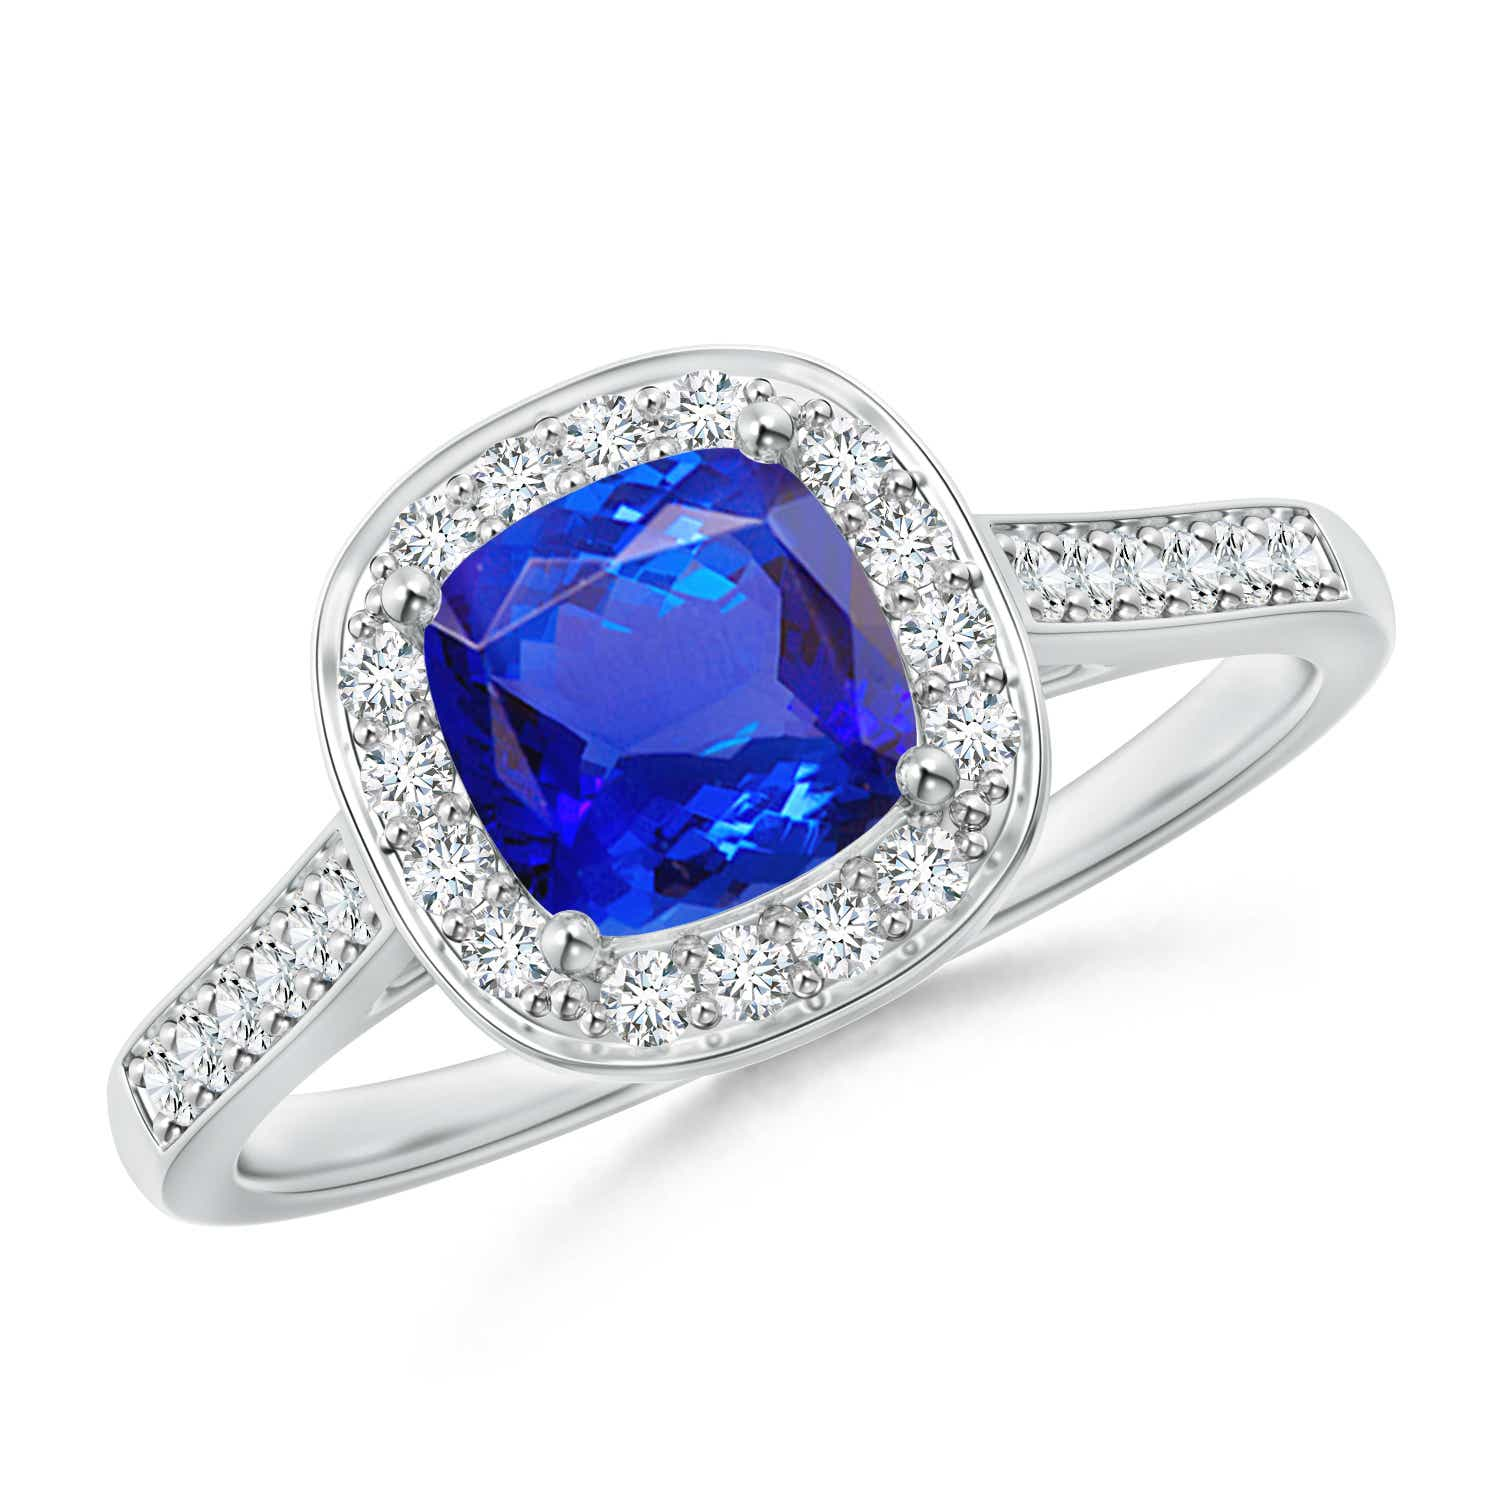 jeffery tanzanite davies gemstones gia